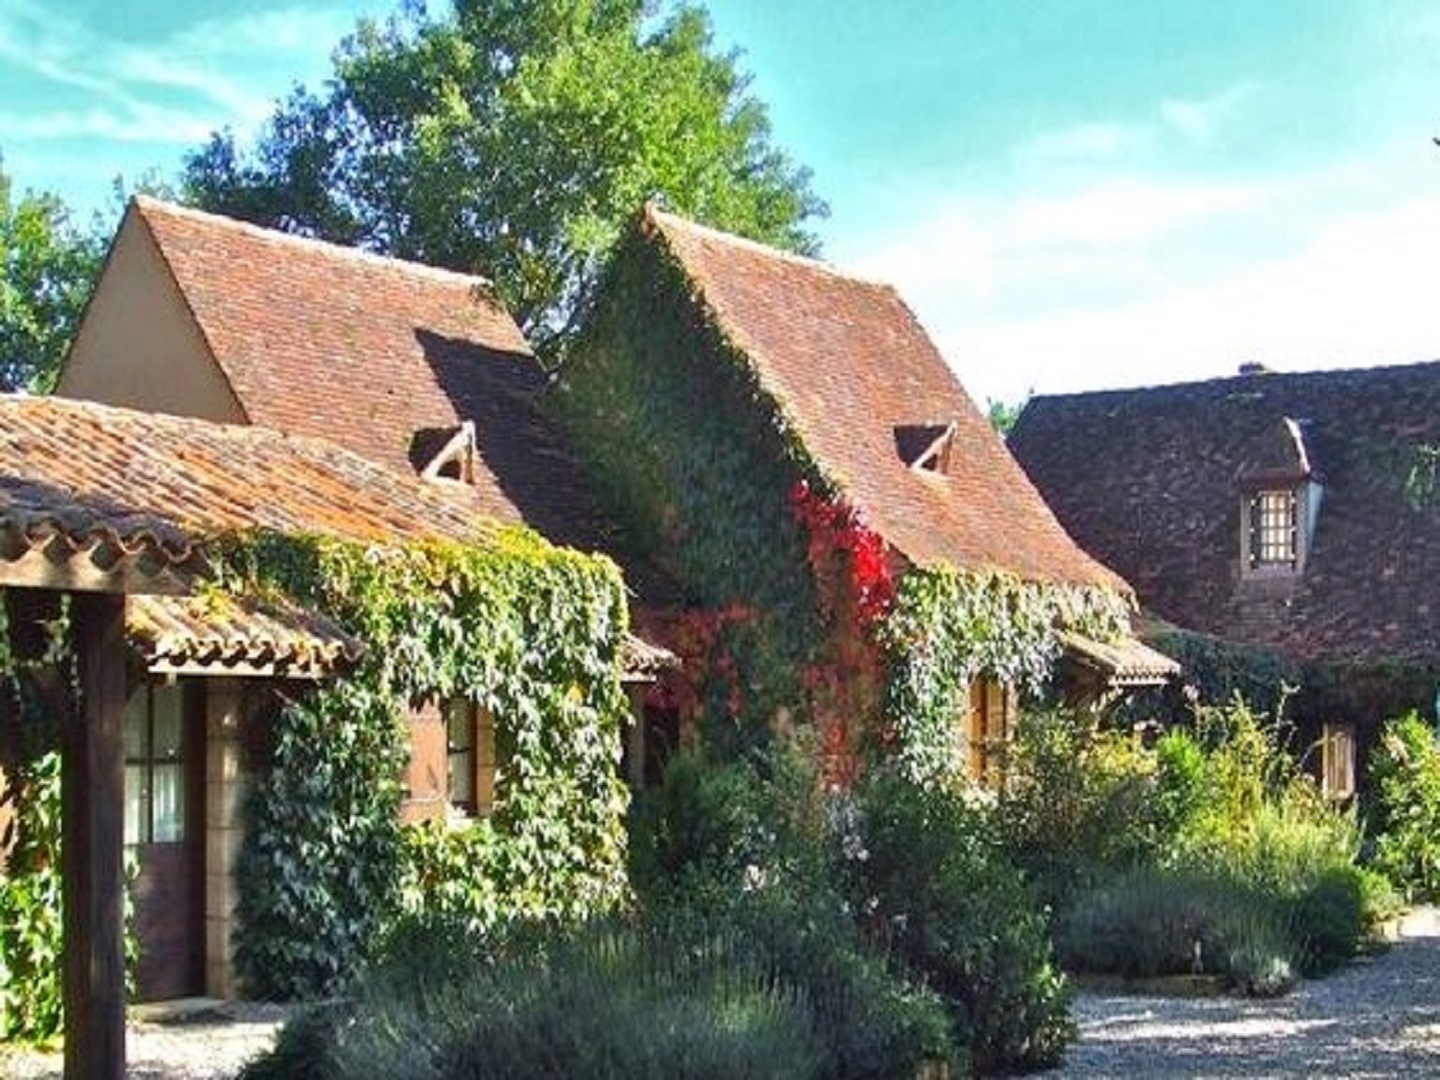 An old brick house with trees in the background at Le Domaine de La Millasserie.